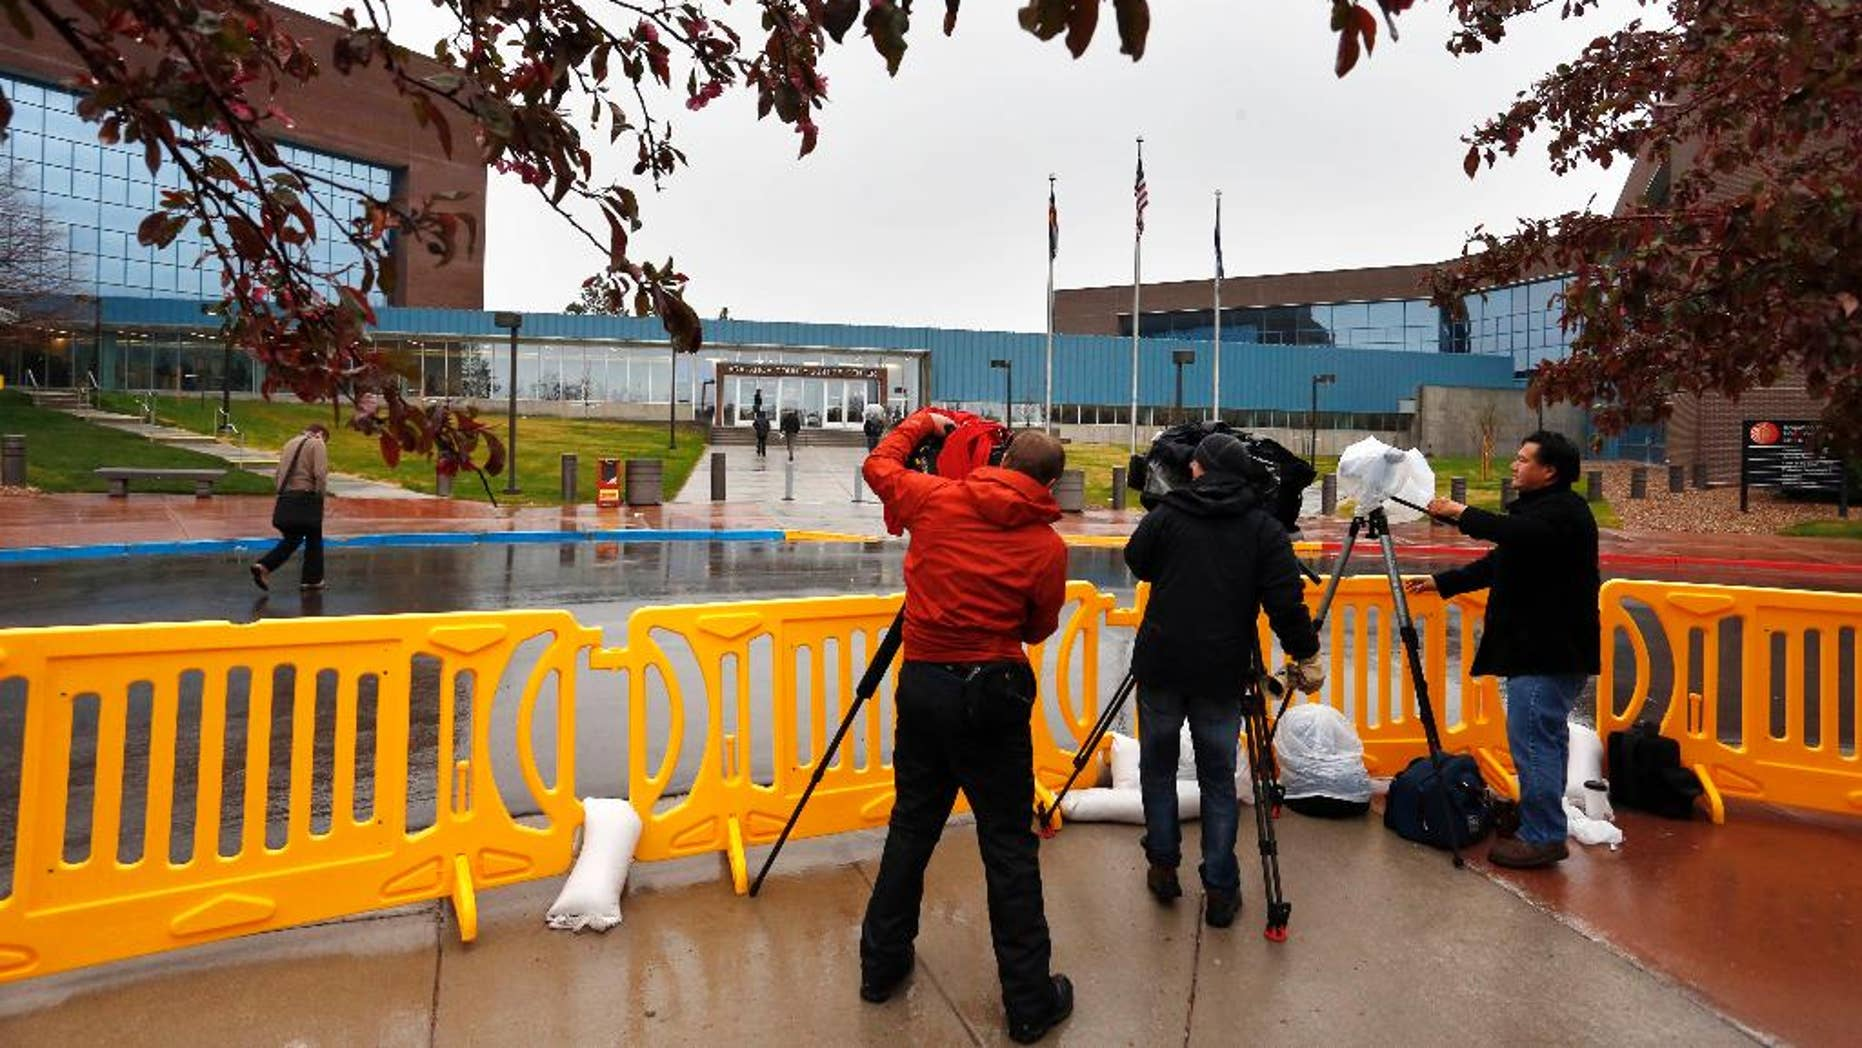 Television journalists film from within a media corral in front of the Arapahoe County Justice Center, on the first day of the trial of Aurora movie theater shootings defendant James Holmes, in Centennial, Colo., Monday April 27, 2015. As the trial begins, the key won't be whether he caused the carnage, but whether Holmes was sane at the time of the killings. (AP Photo/Brennan Linsley)